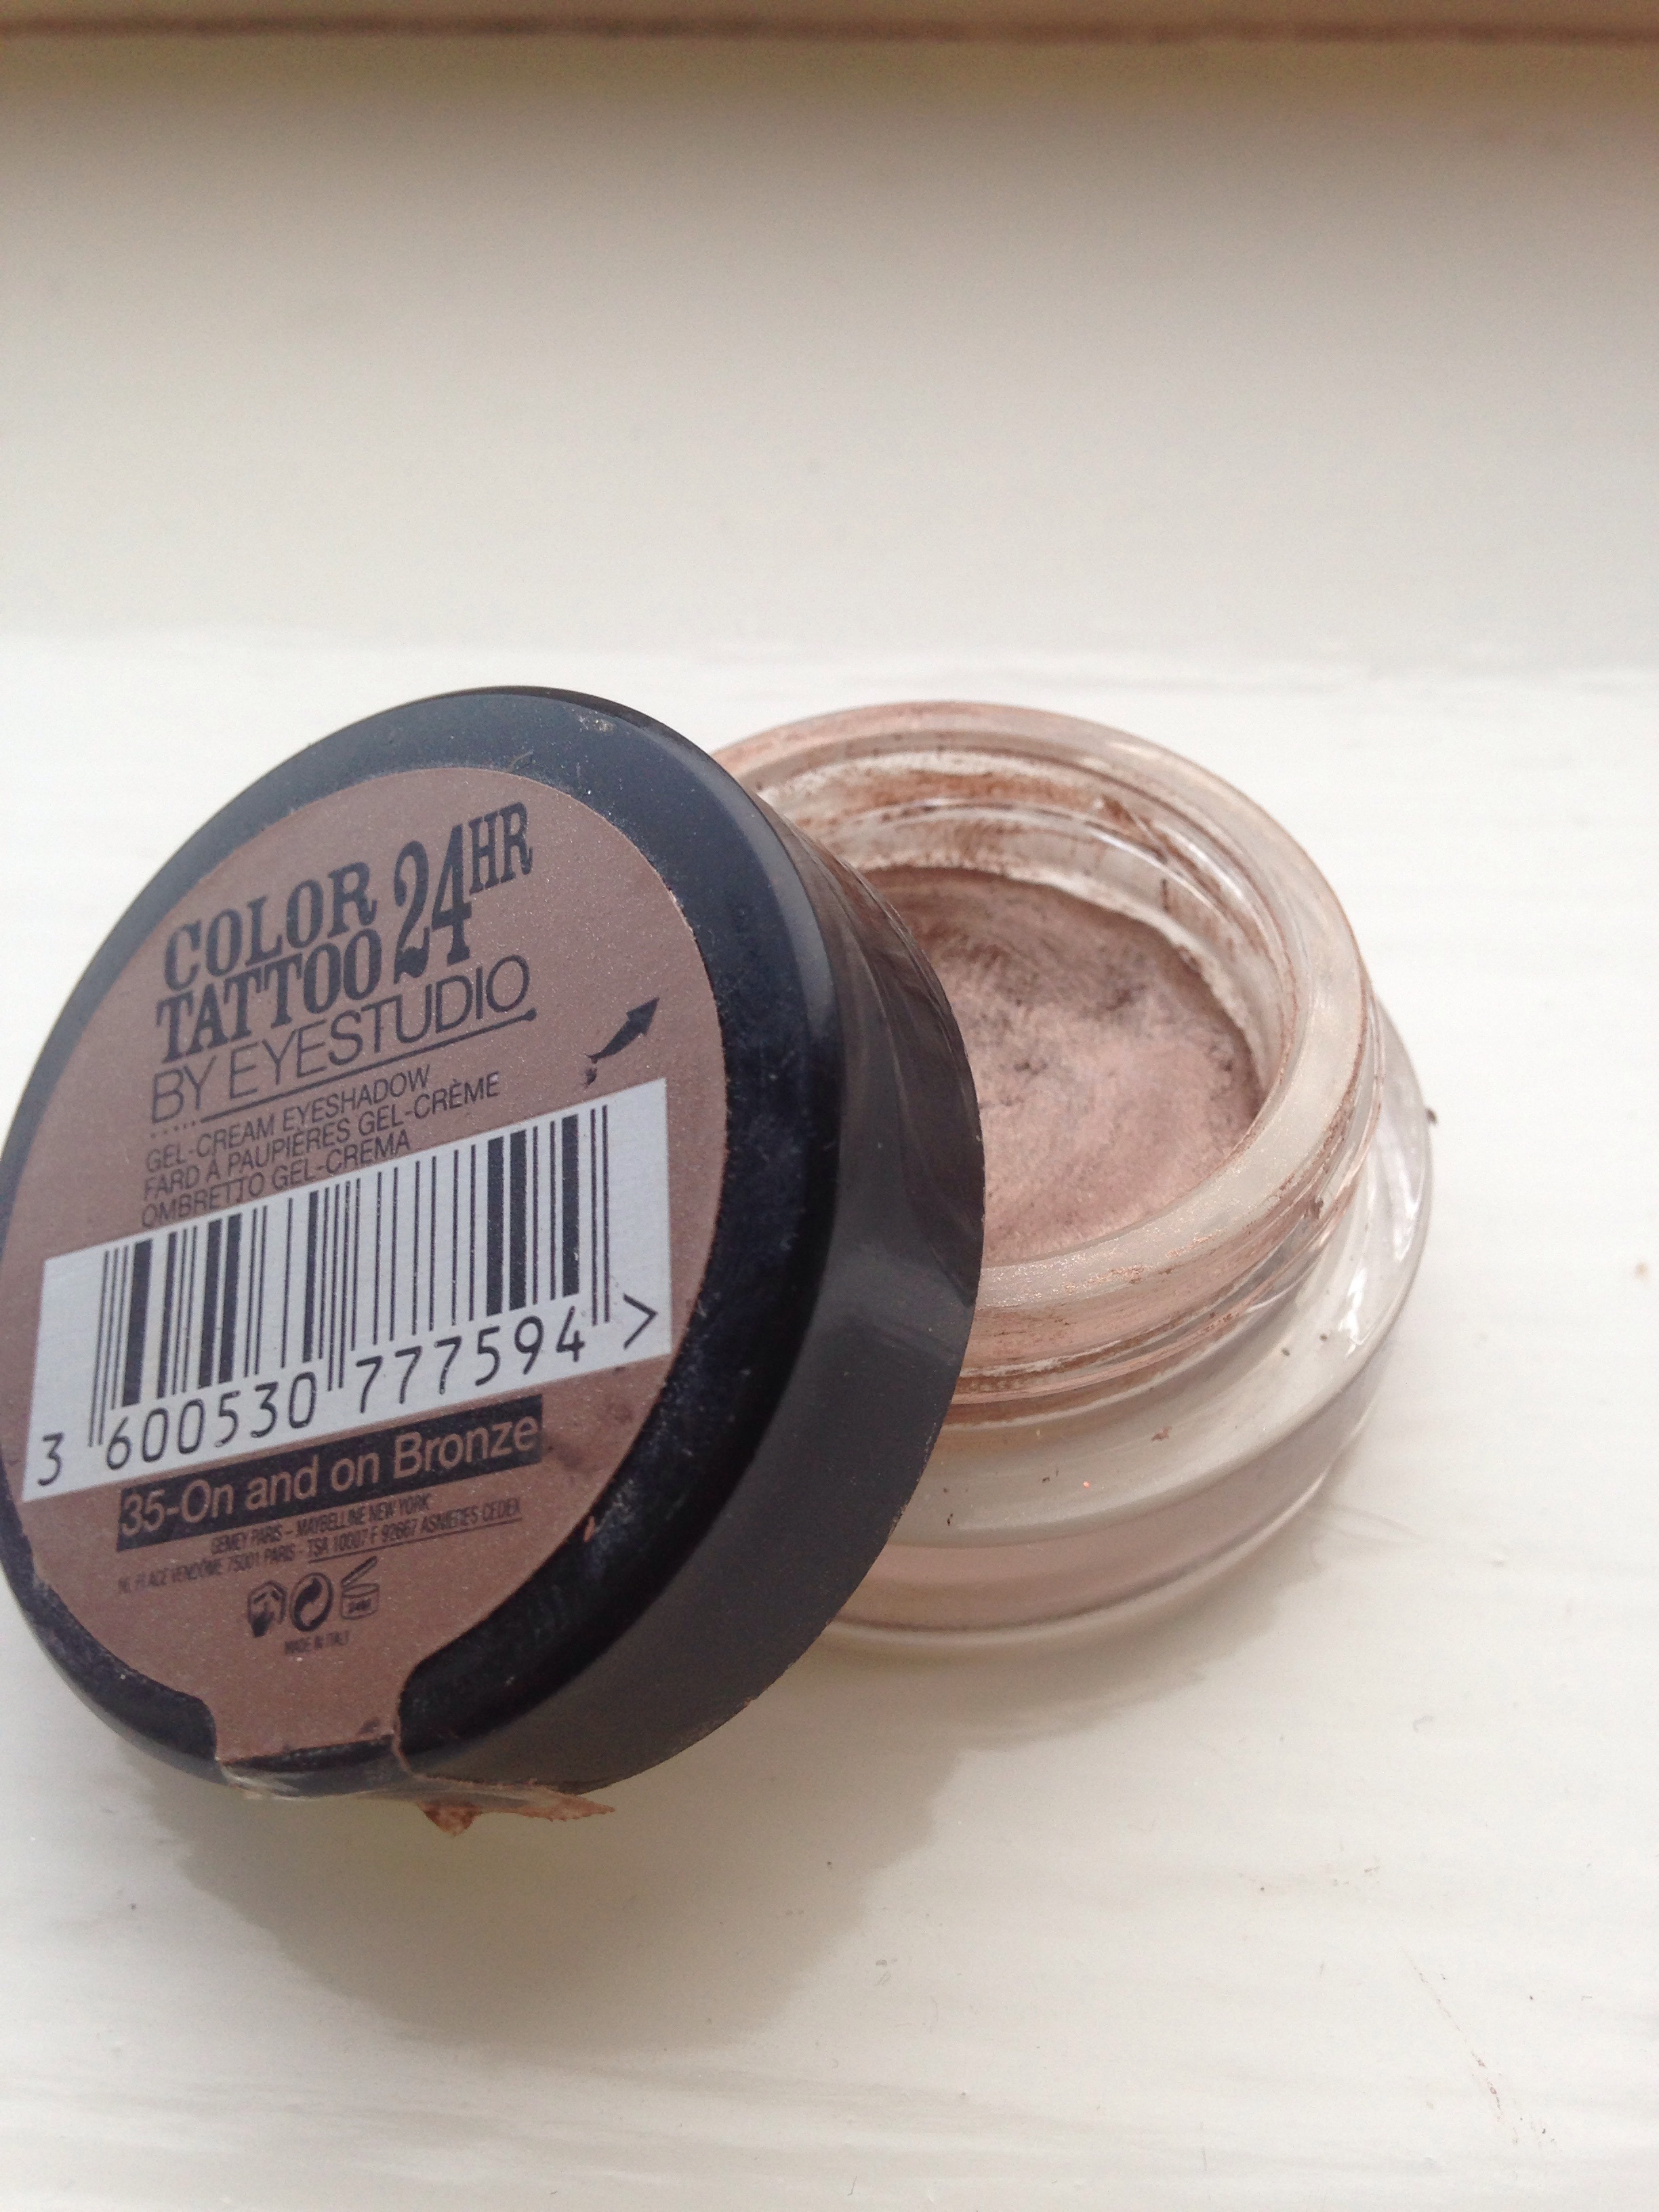 Maybelline Color Tattoo 24 Hour in On and On Bronze